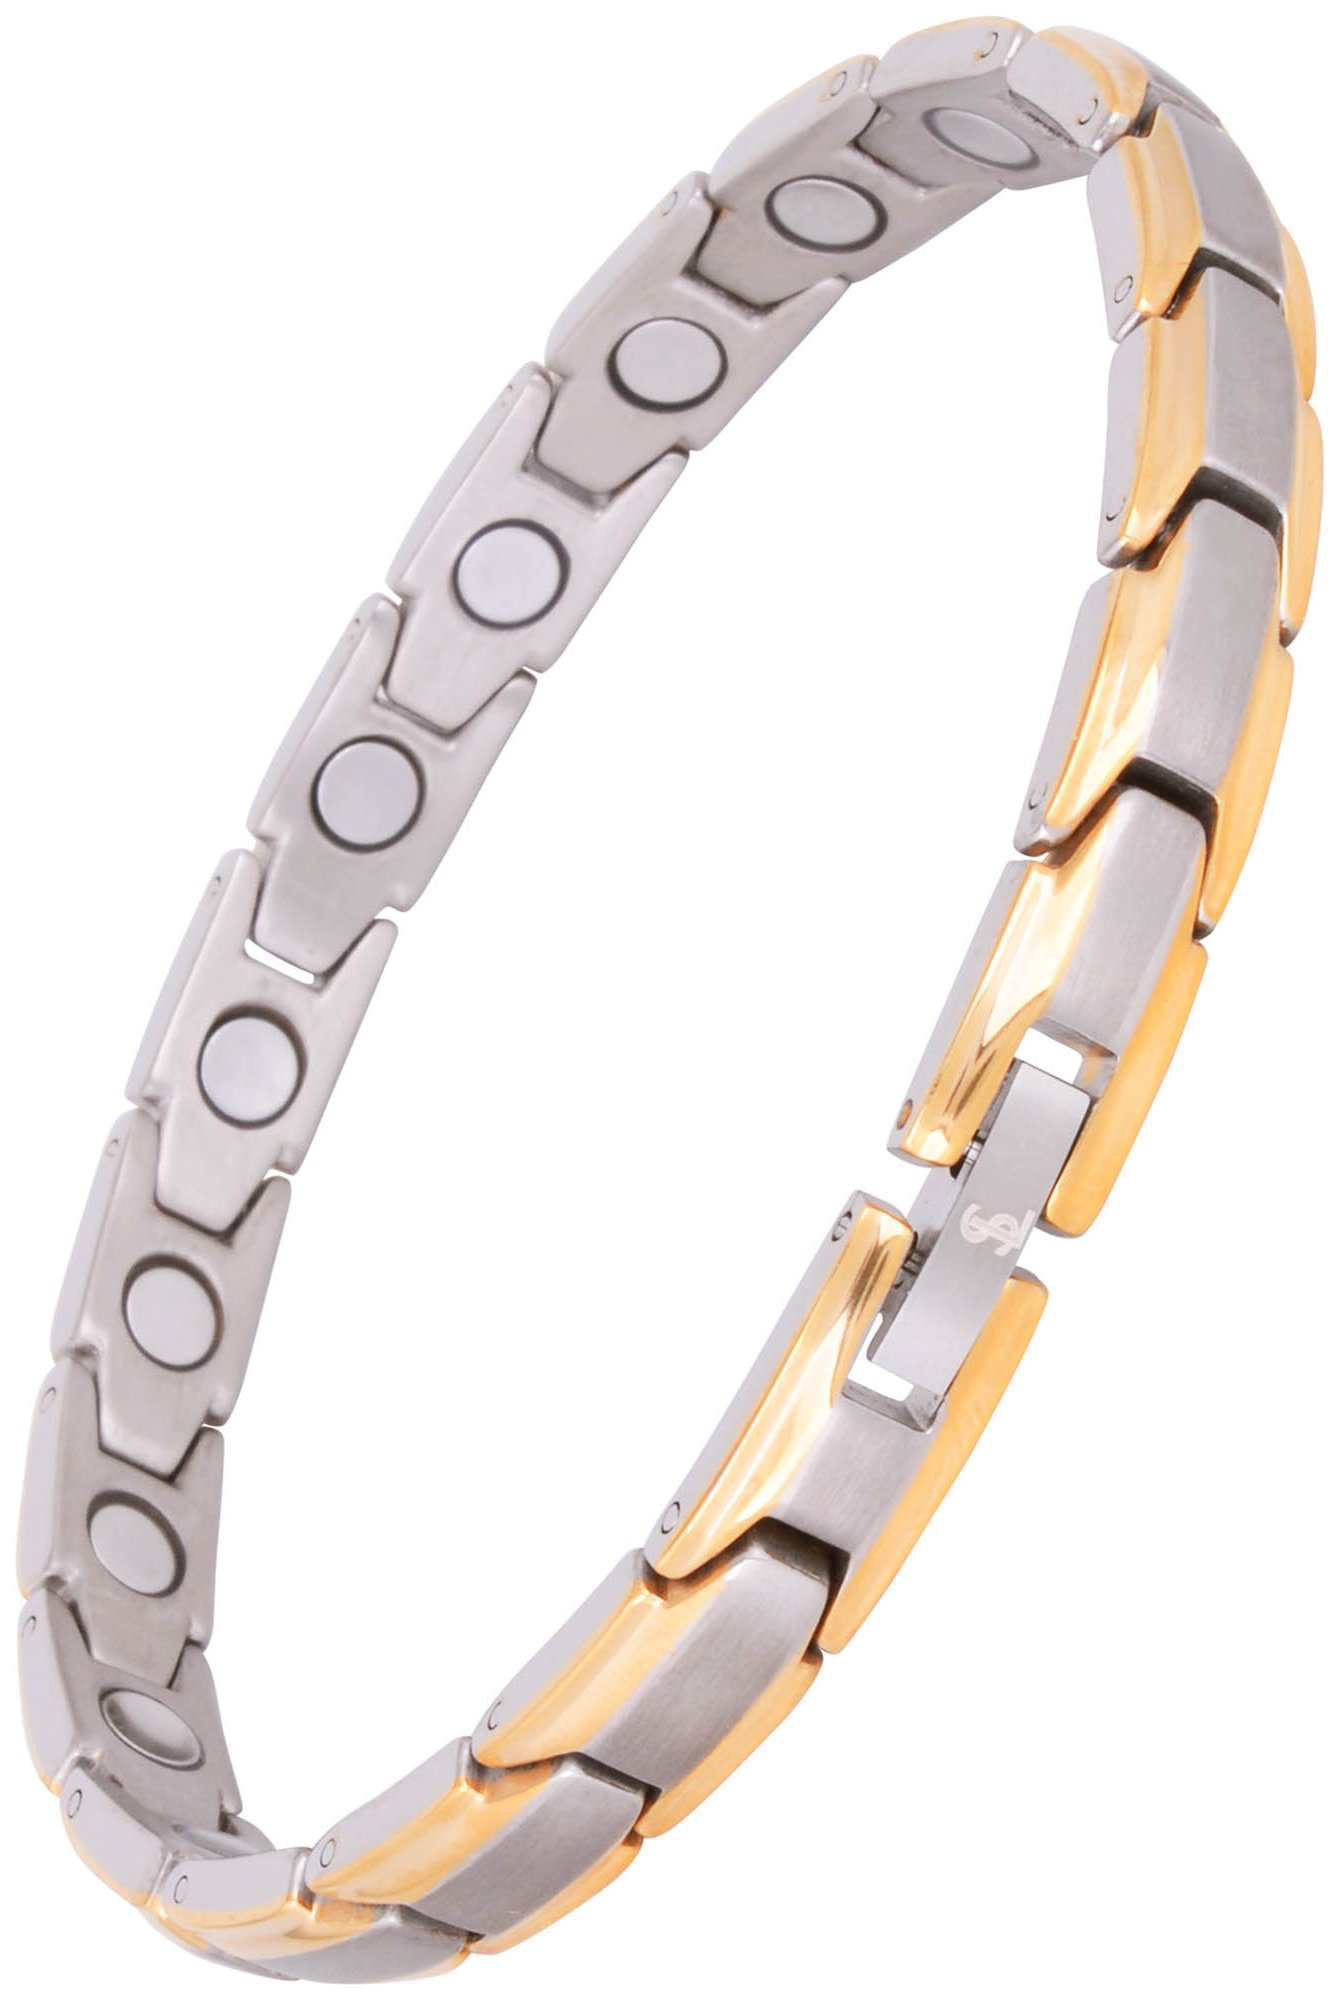 Elegant Womens Titanium Magnetic Therapy Bracelet Pain Relief for Arthritis and Carpal Tunnel by Smarter LifeStyle